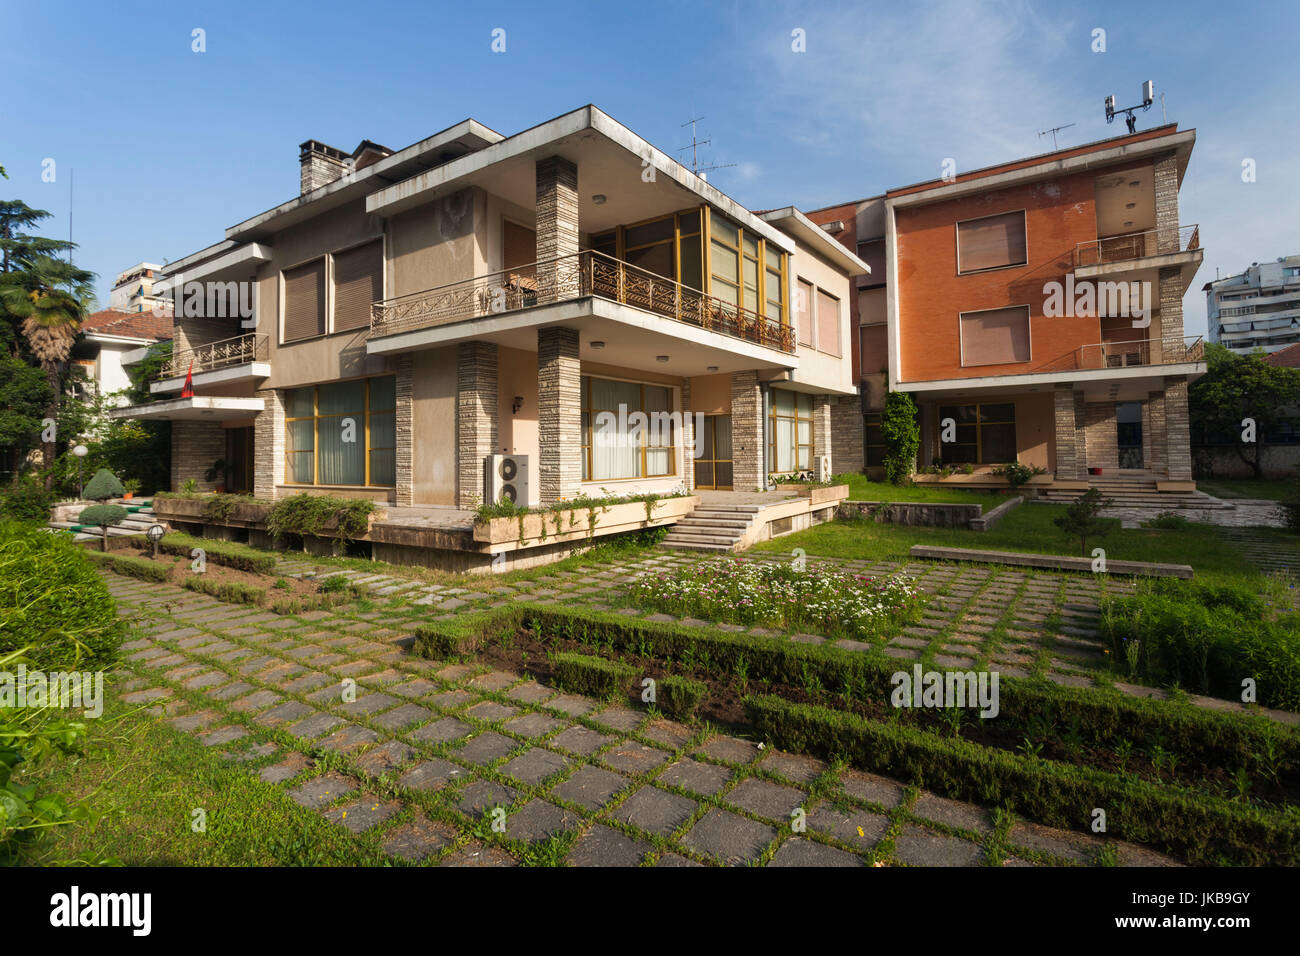 Albania, Tirana, Blloku area, formerly used by Communist party elite, former home of Communist leader Enver Hoxha, - Stock Image